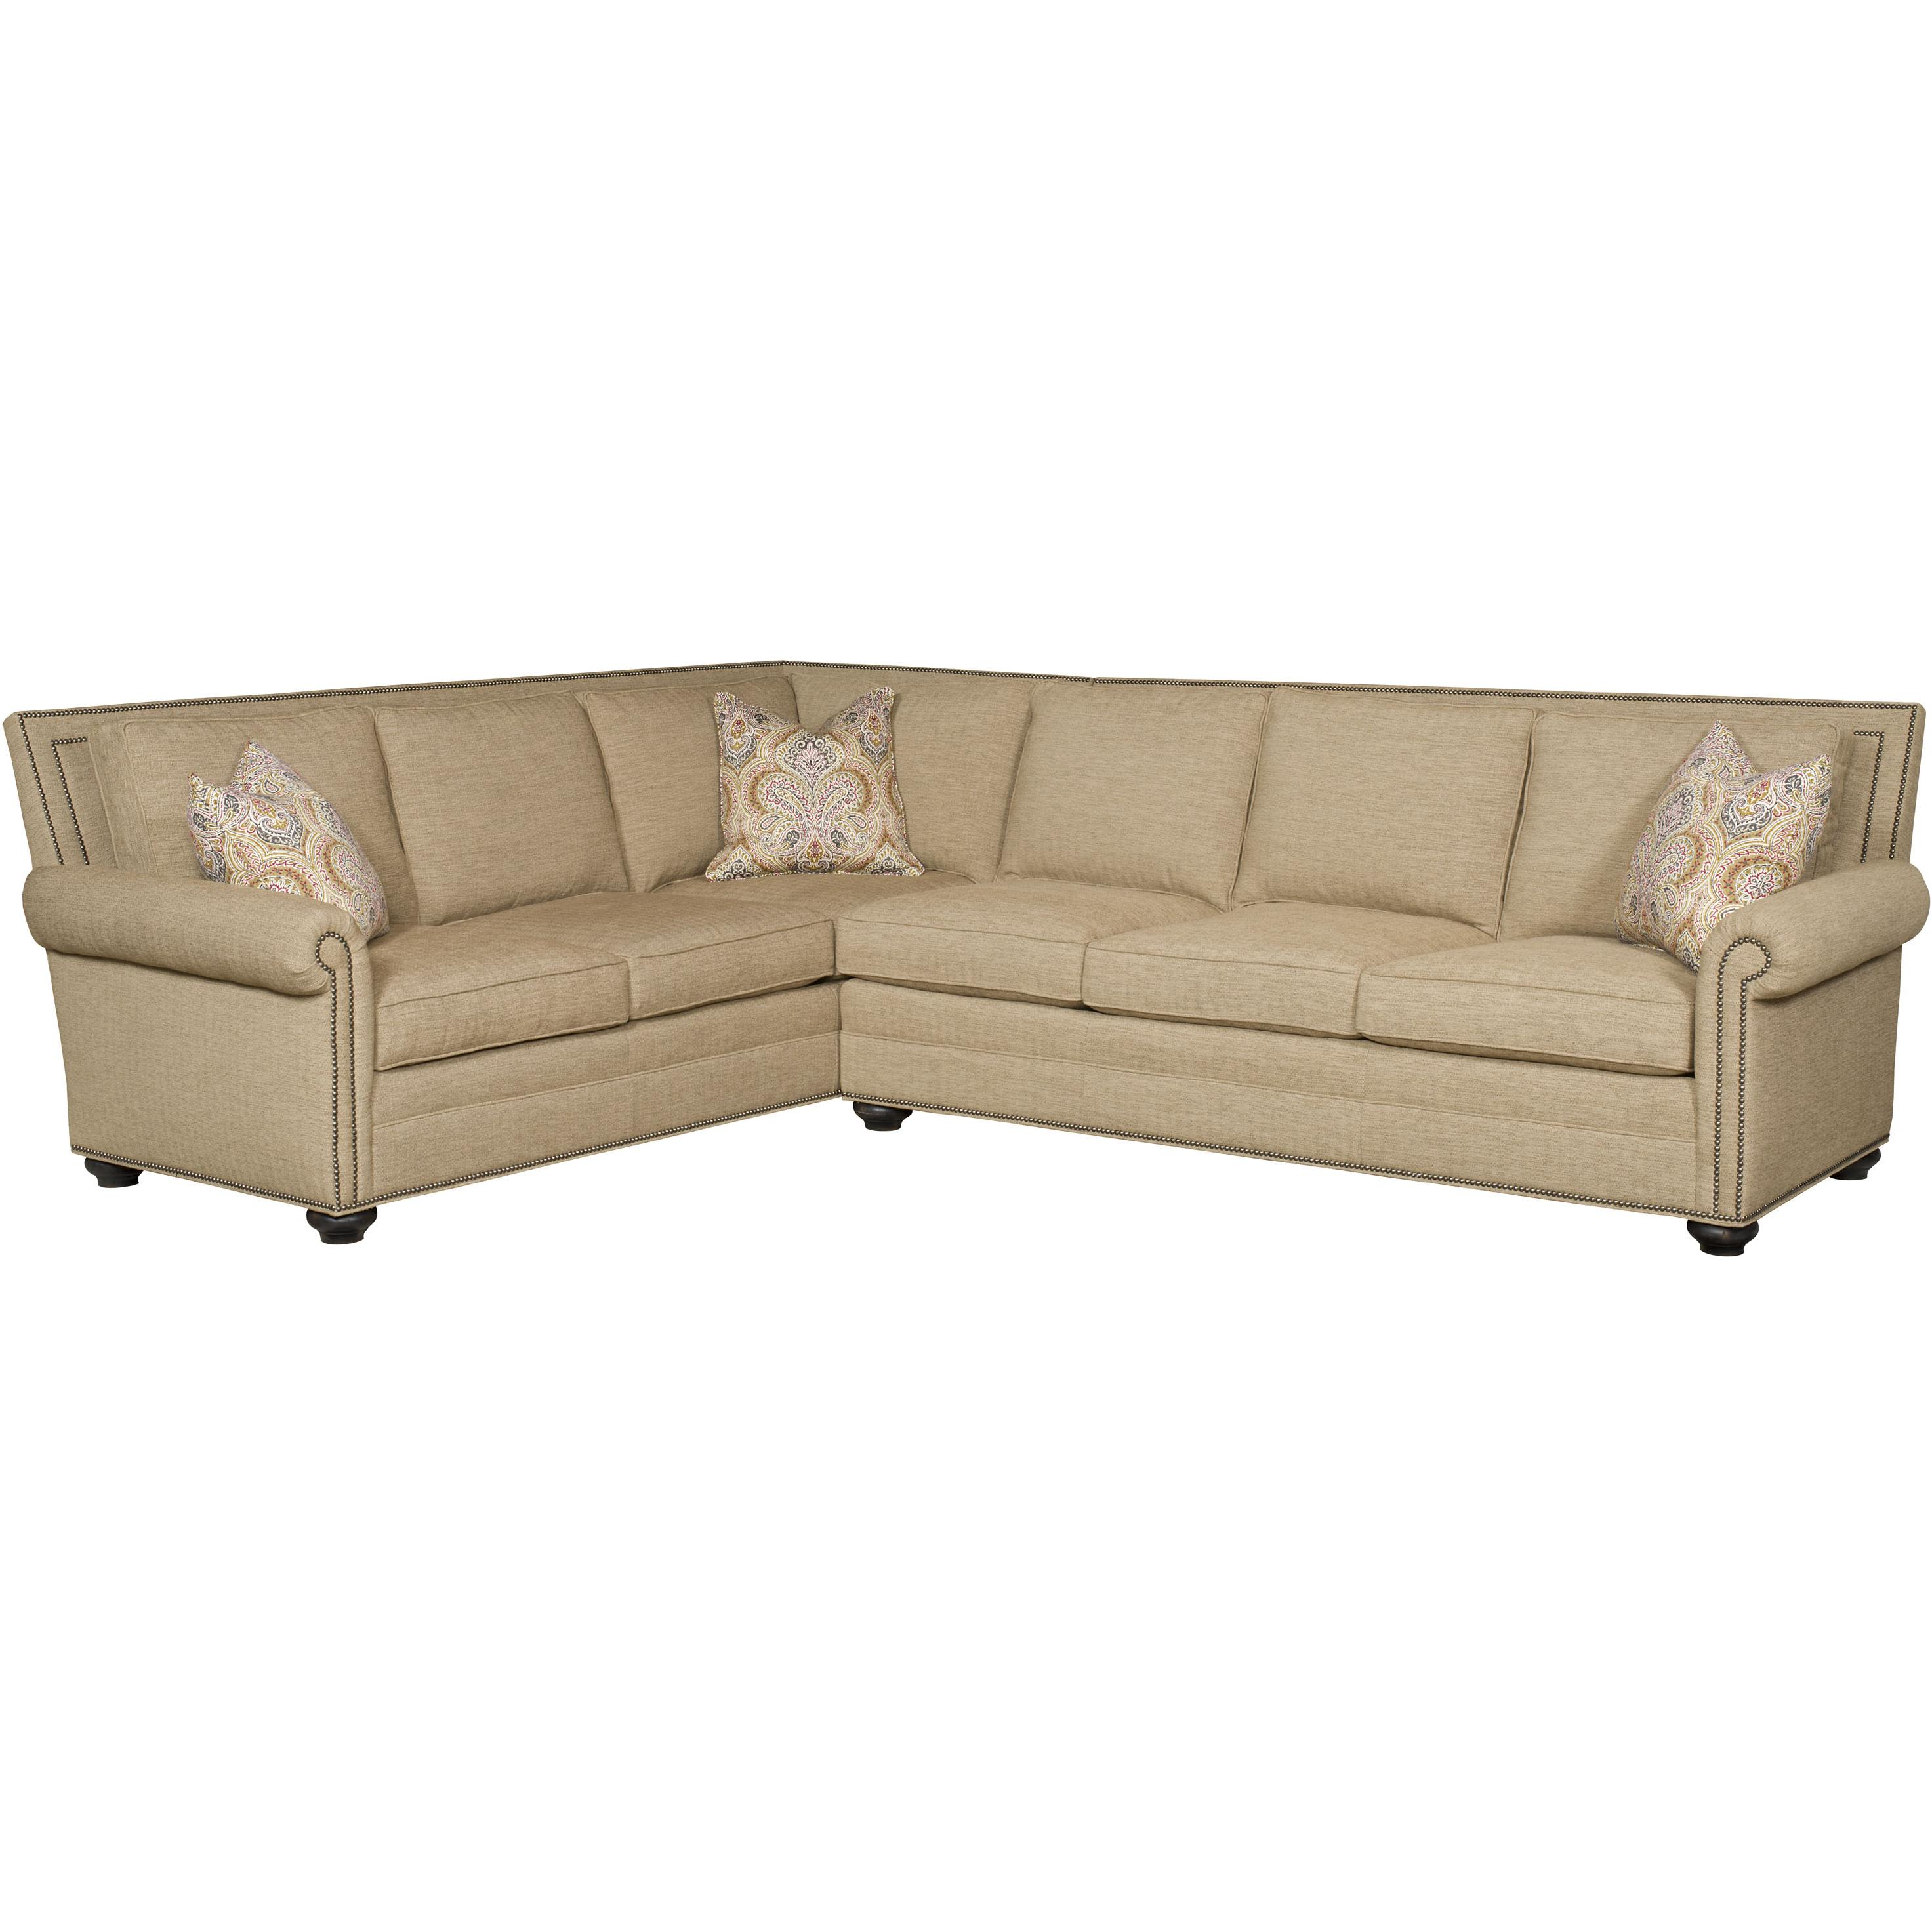 Vanguard Furniture Simpson Traditional Sectional With